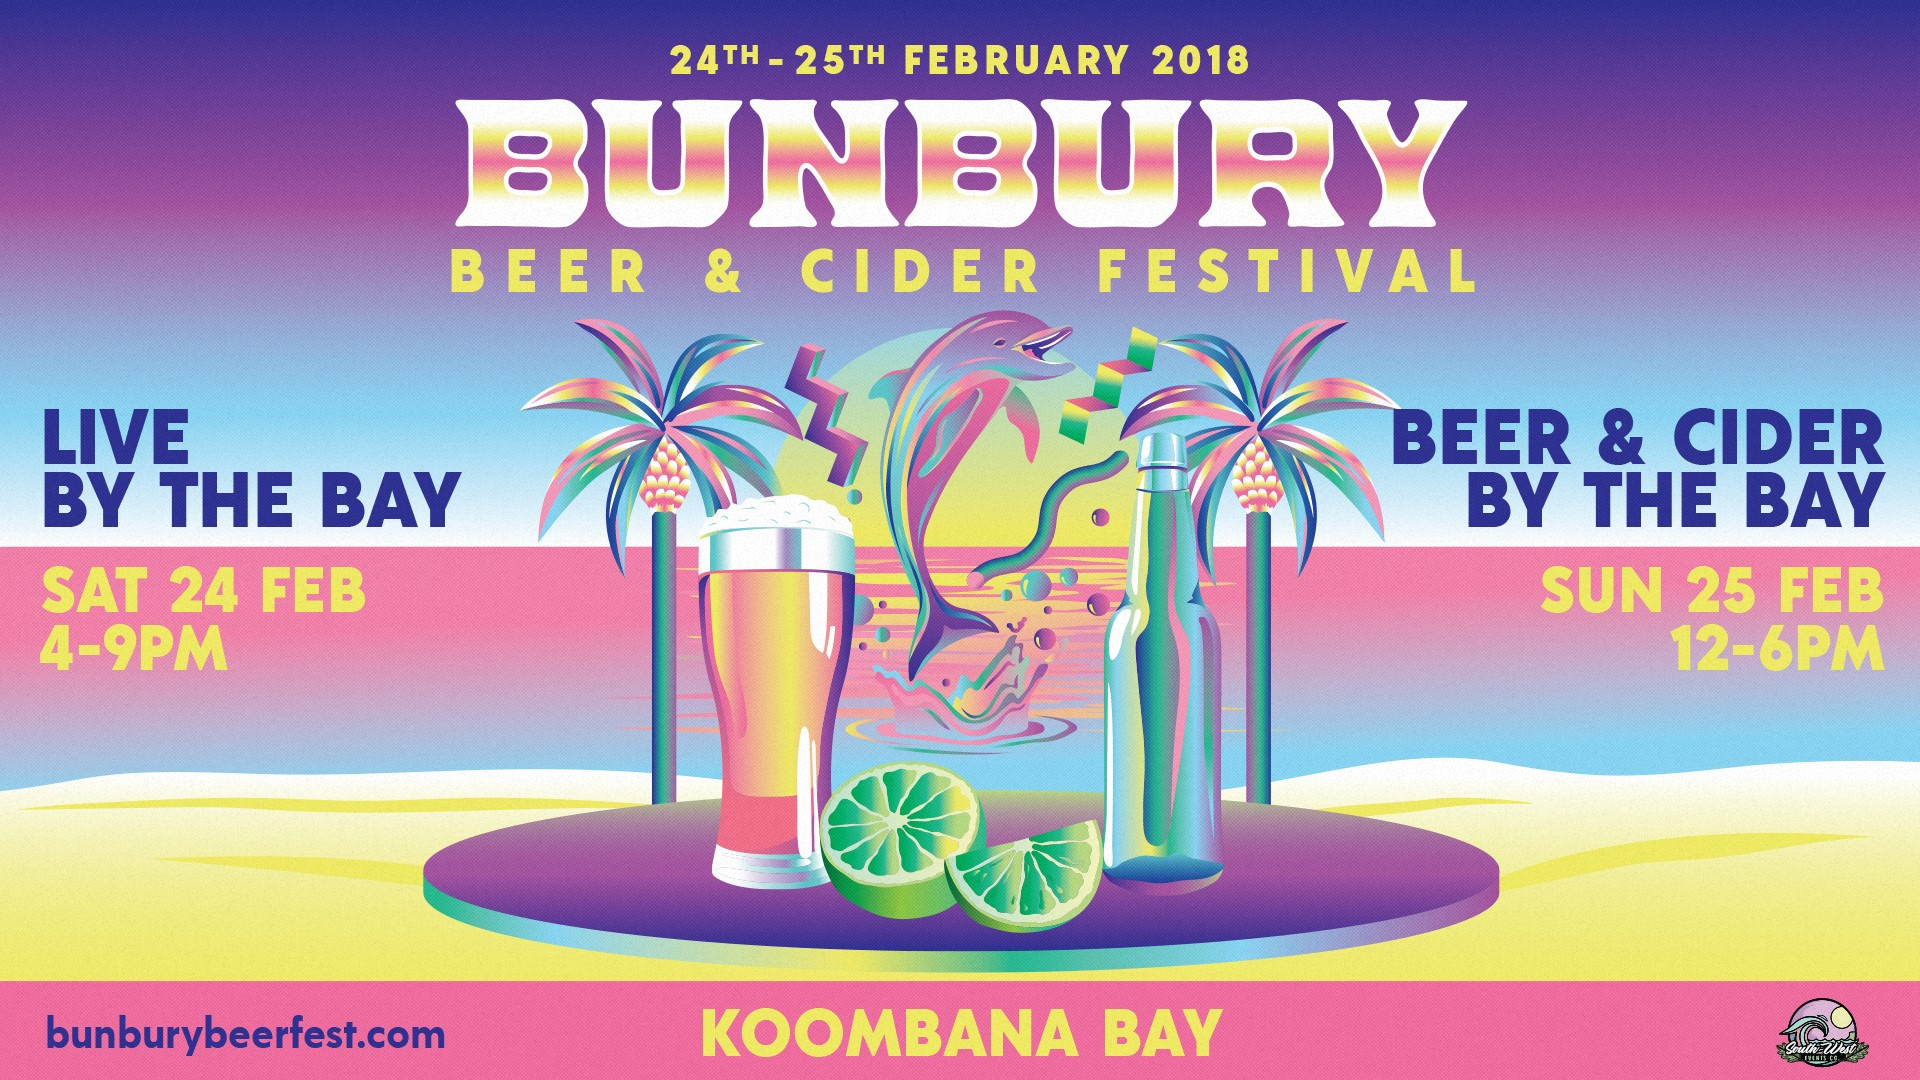 Tickets for Bunbury Beer & Cider Festival in Bunbury from